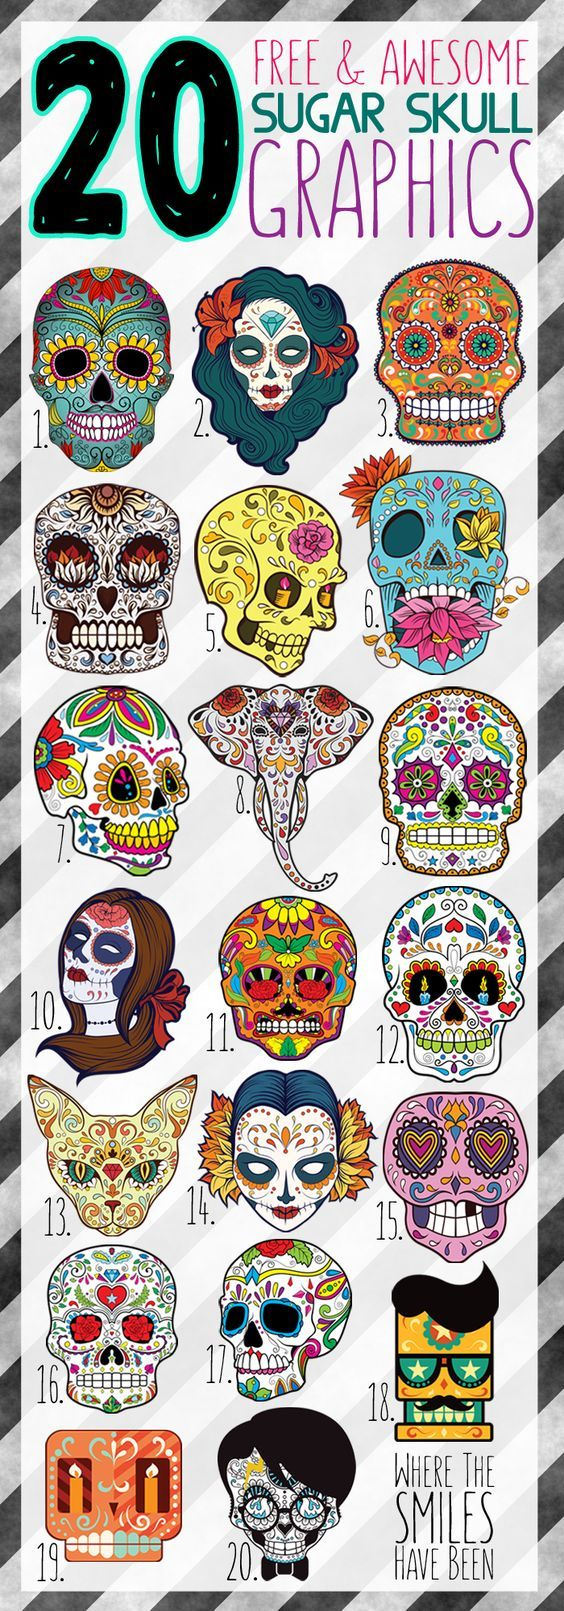 20 Free & Awesome Sugar Skull Graphics! | Where The Smiles Have Been: